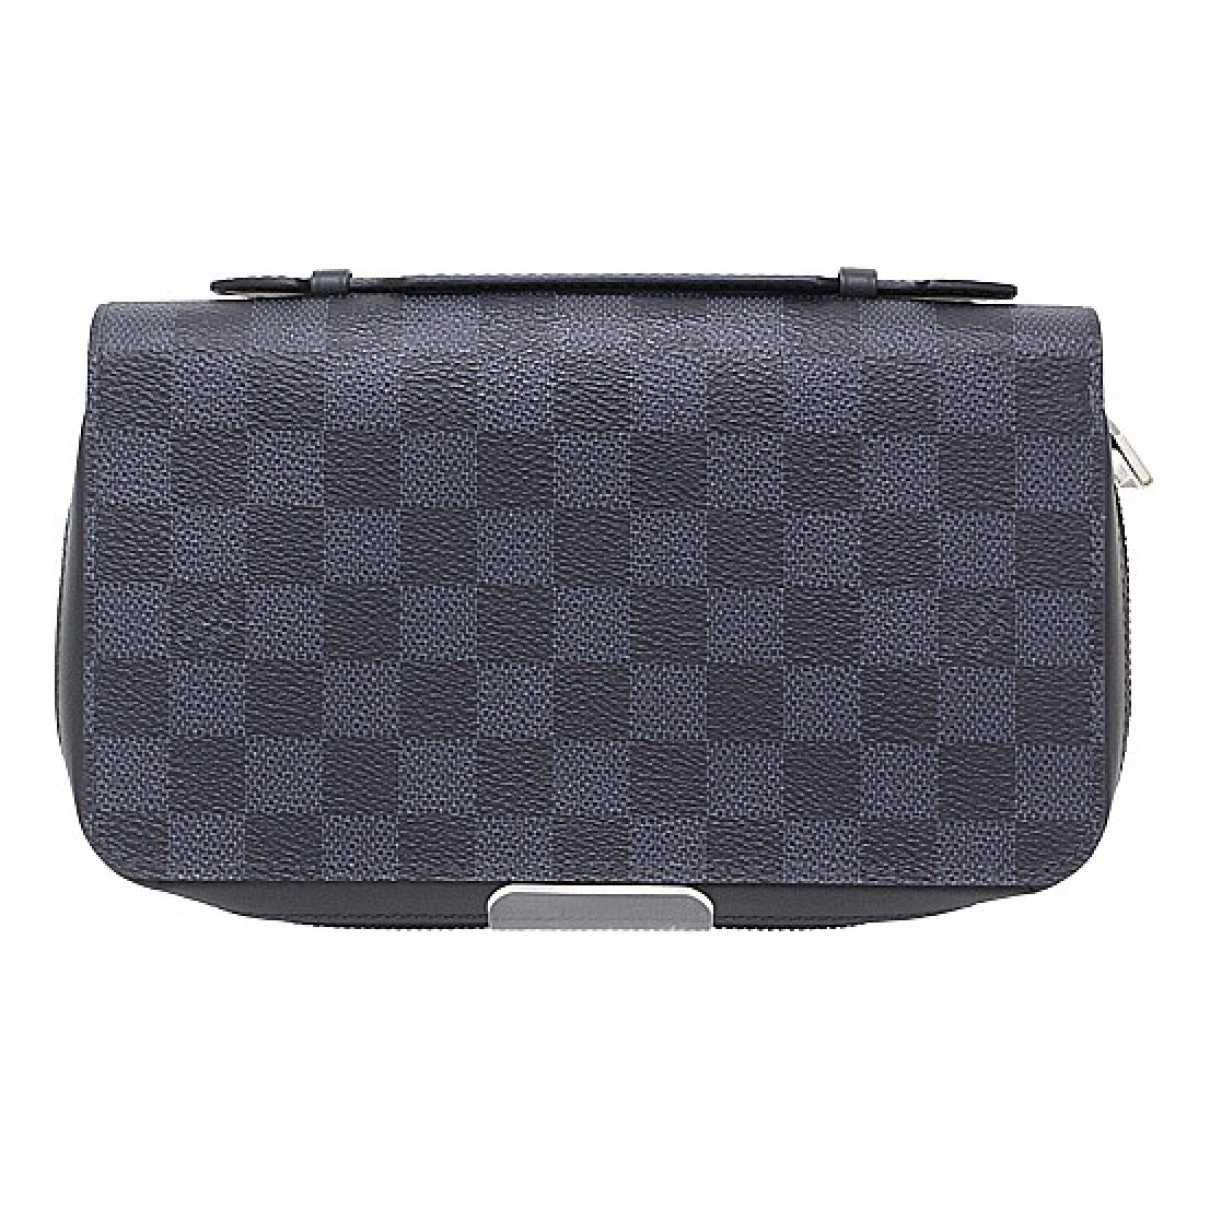 Louis Vuitton N Anthracite Cloth Small bag, wallet & cases for Men N